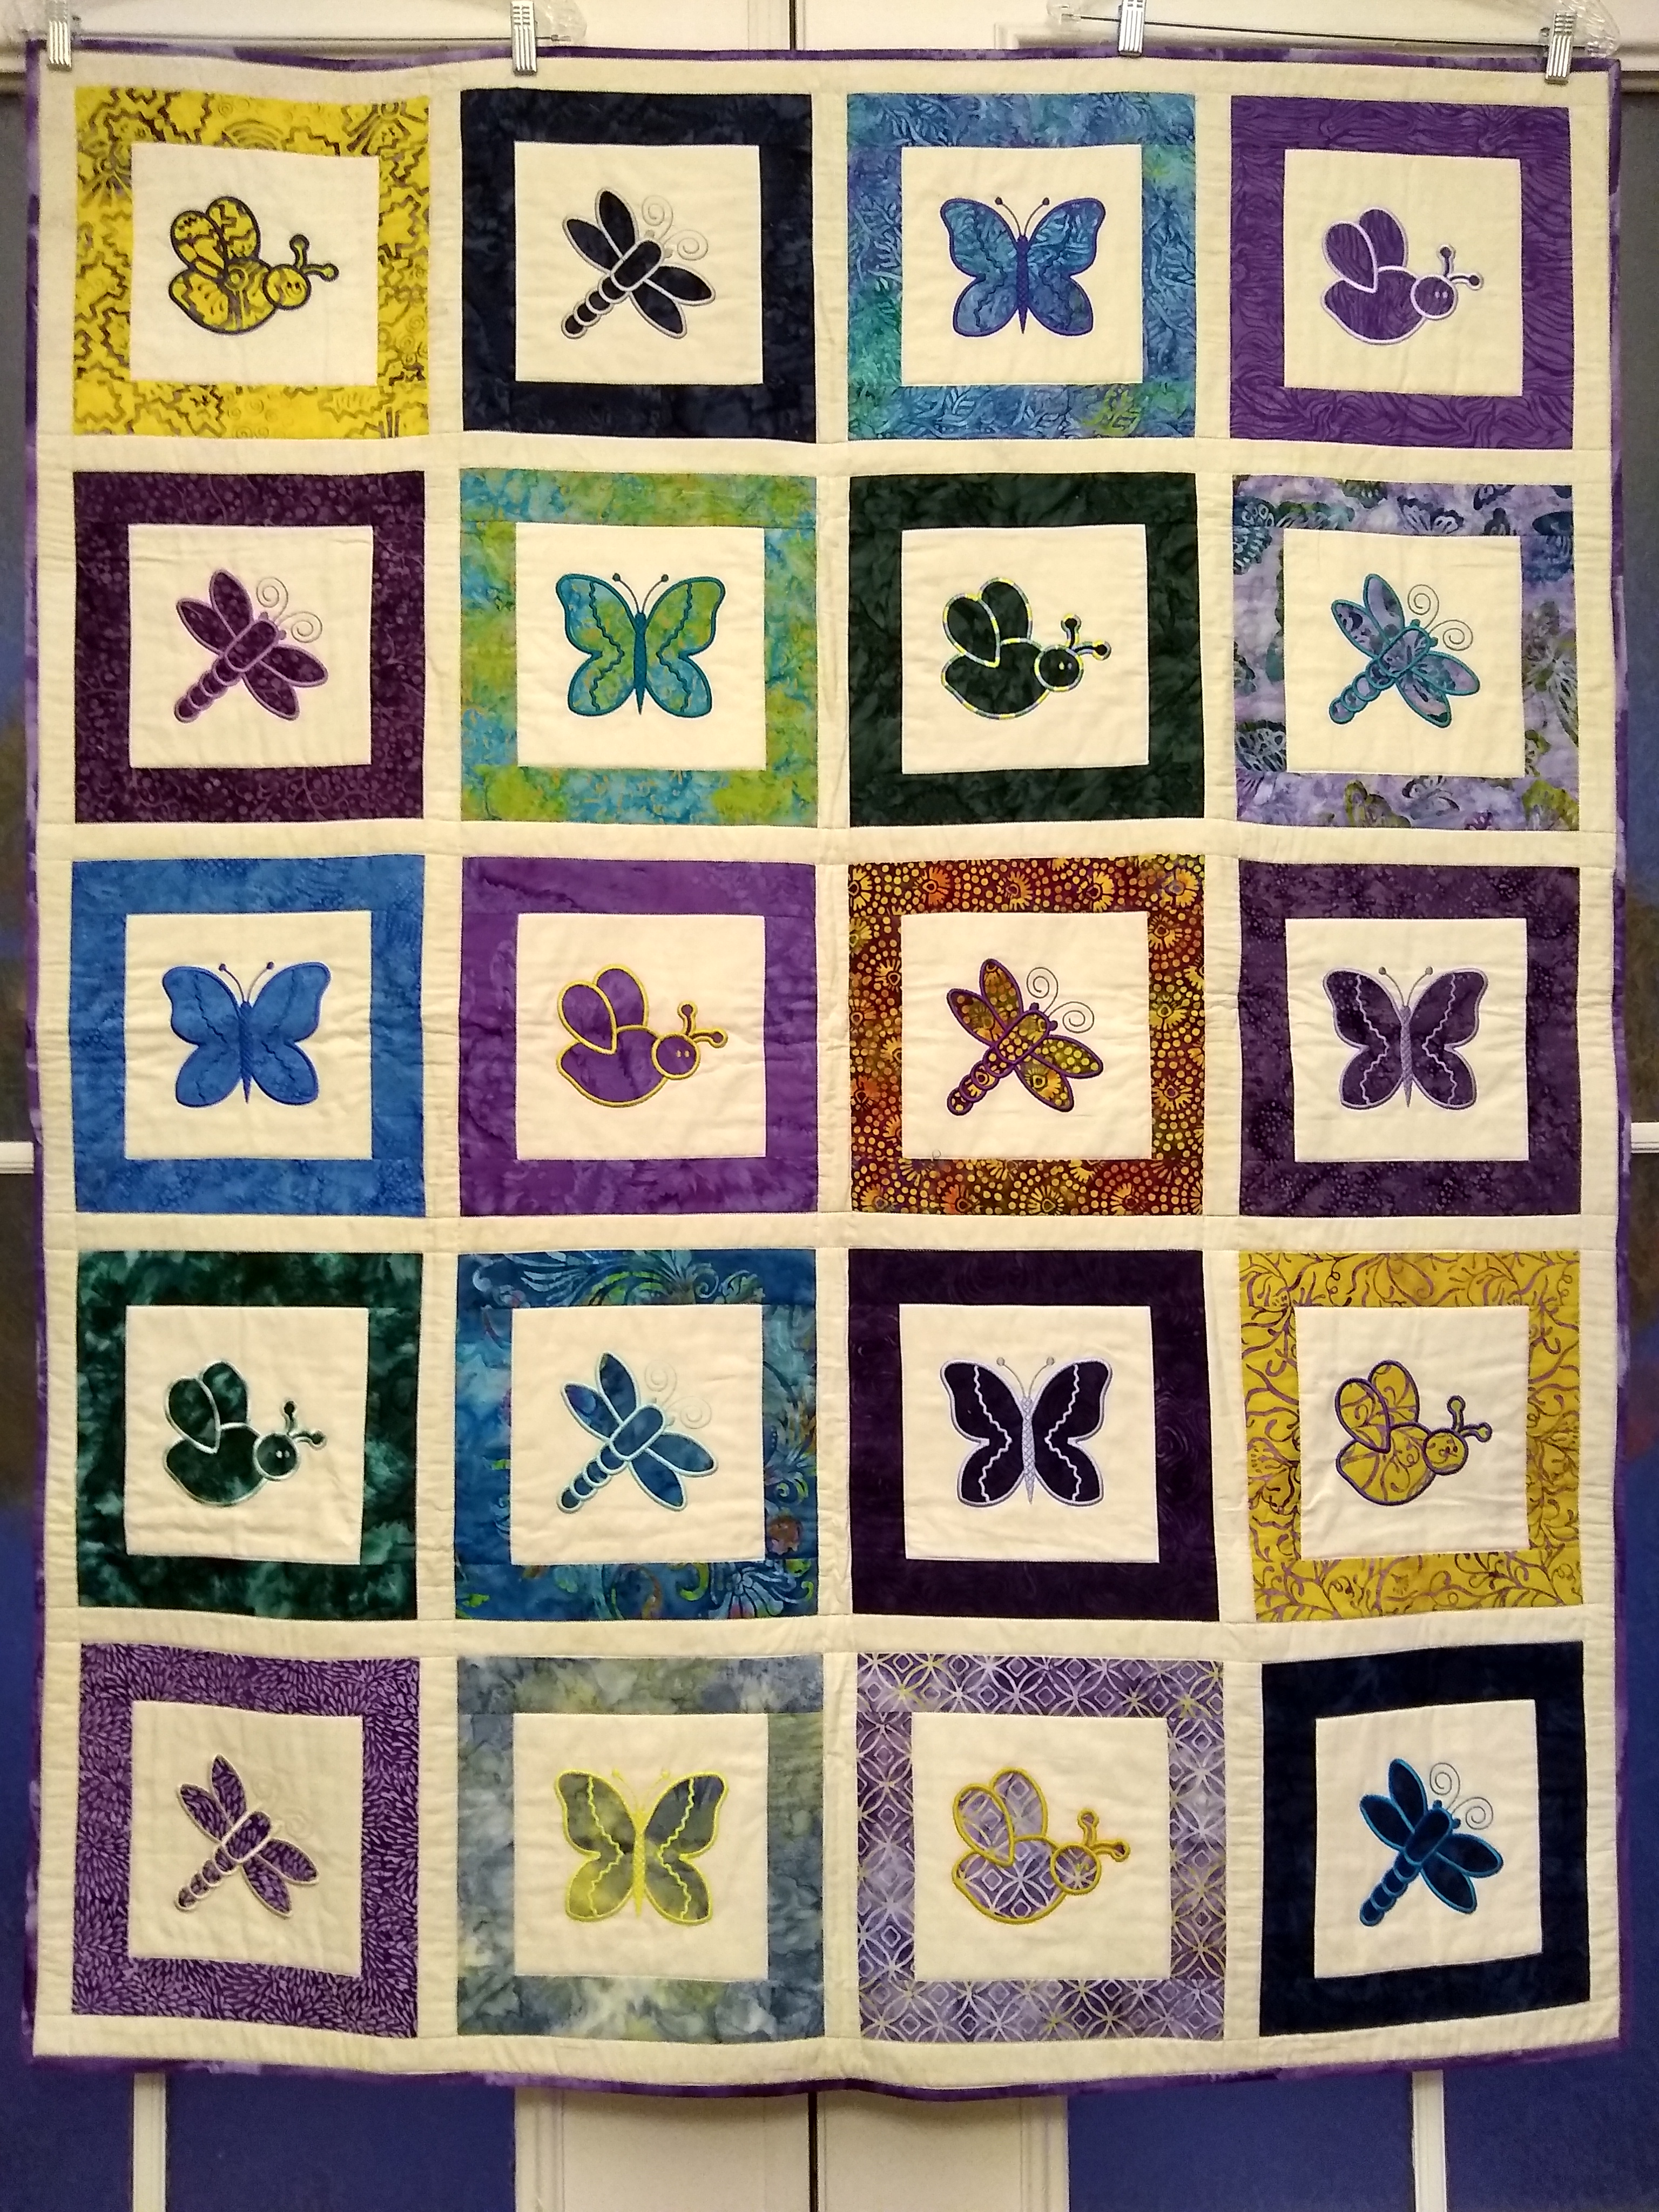 Butterfly, dragonfly, bee quilt